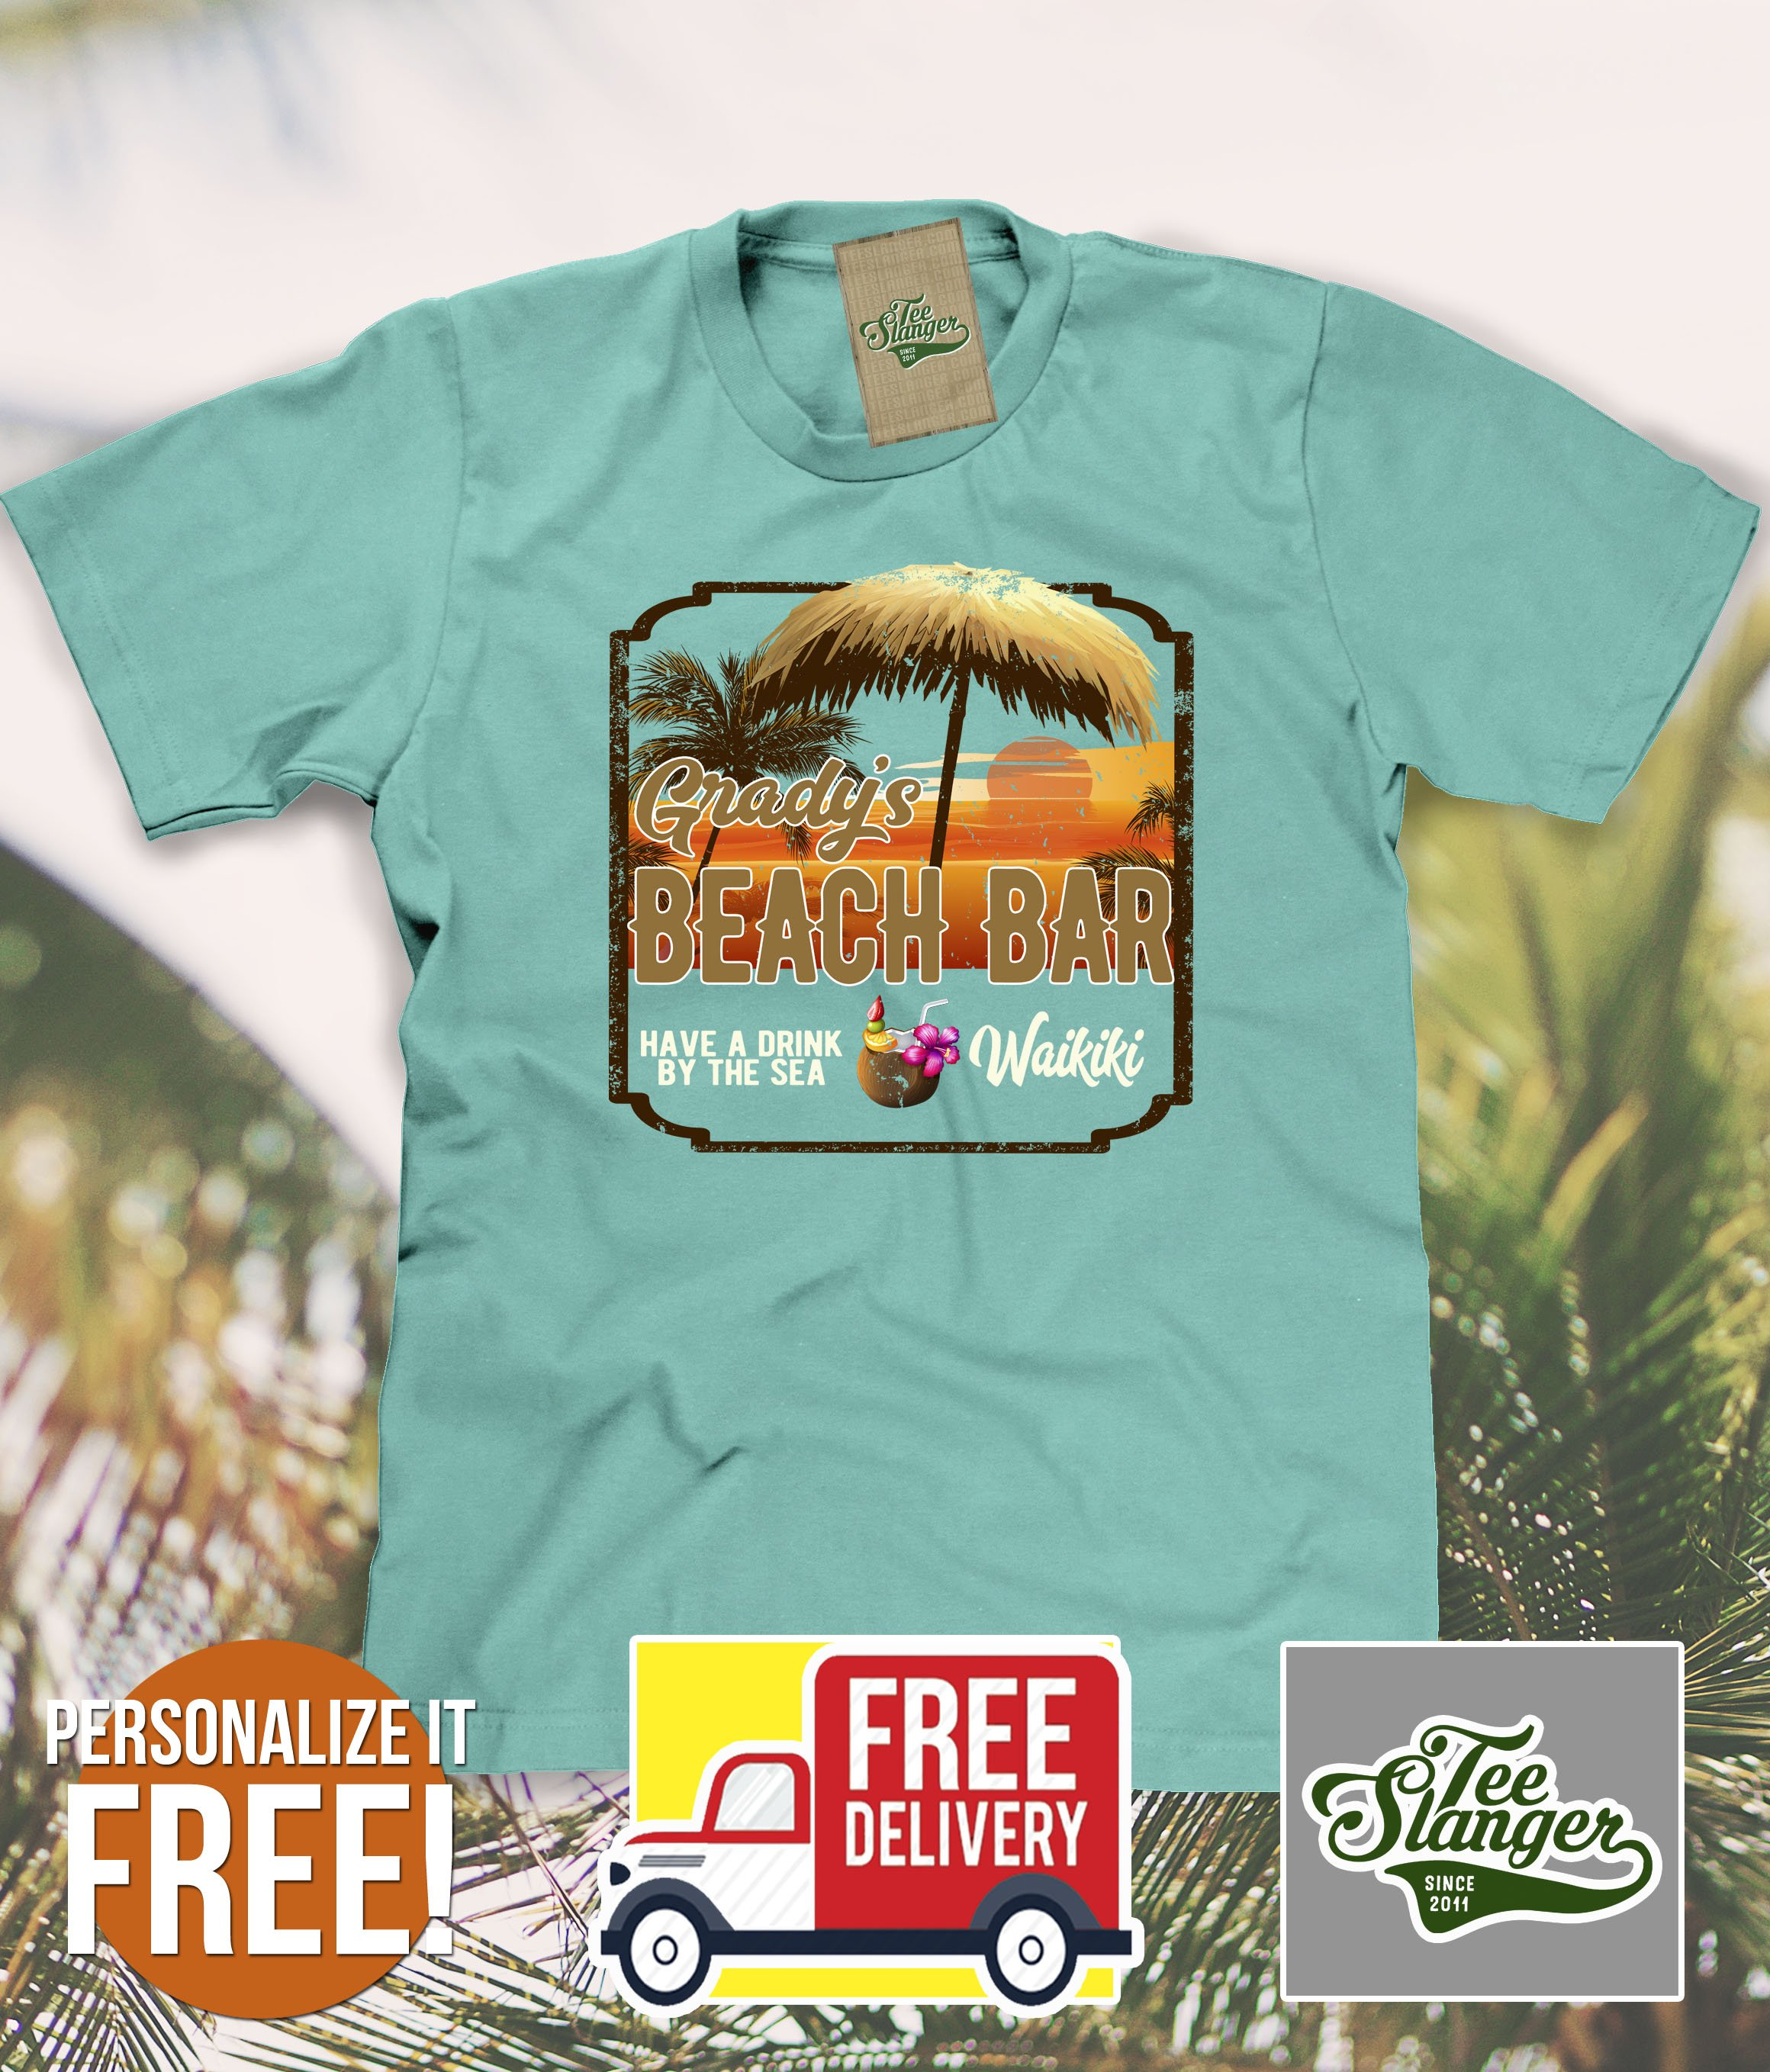 b6ae8c7f0 Customized Beach Bar T-shirt – Teeslanger Free personalization. Free  shipping. #hawaii #beach #oahu #waikiki #maui #kauai